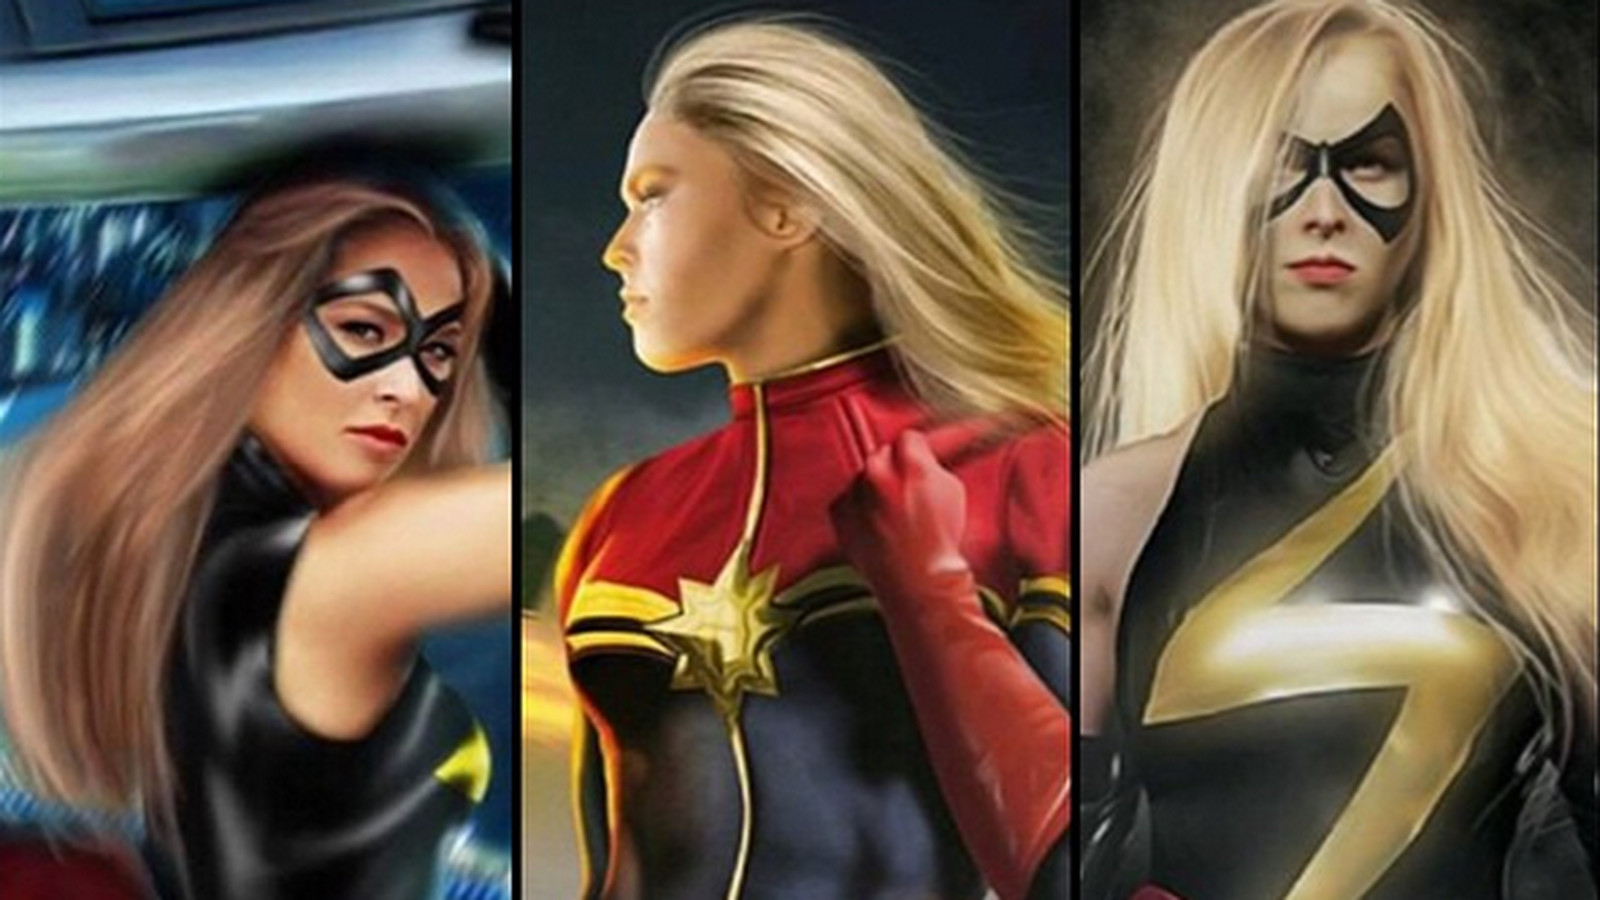 Ronda Rousey Subtly Lobbies For Captain Marvel Role With